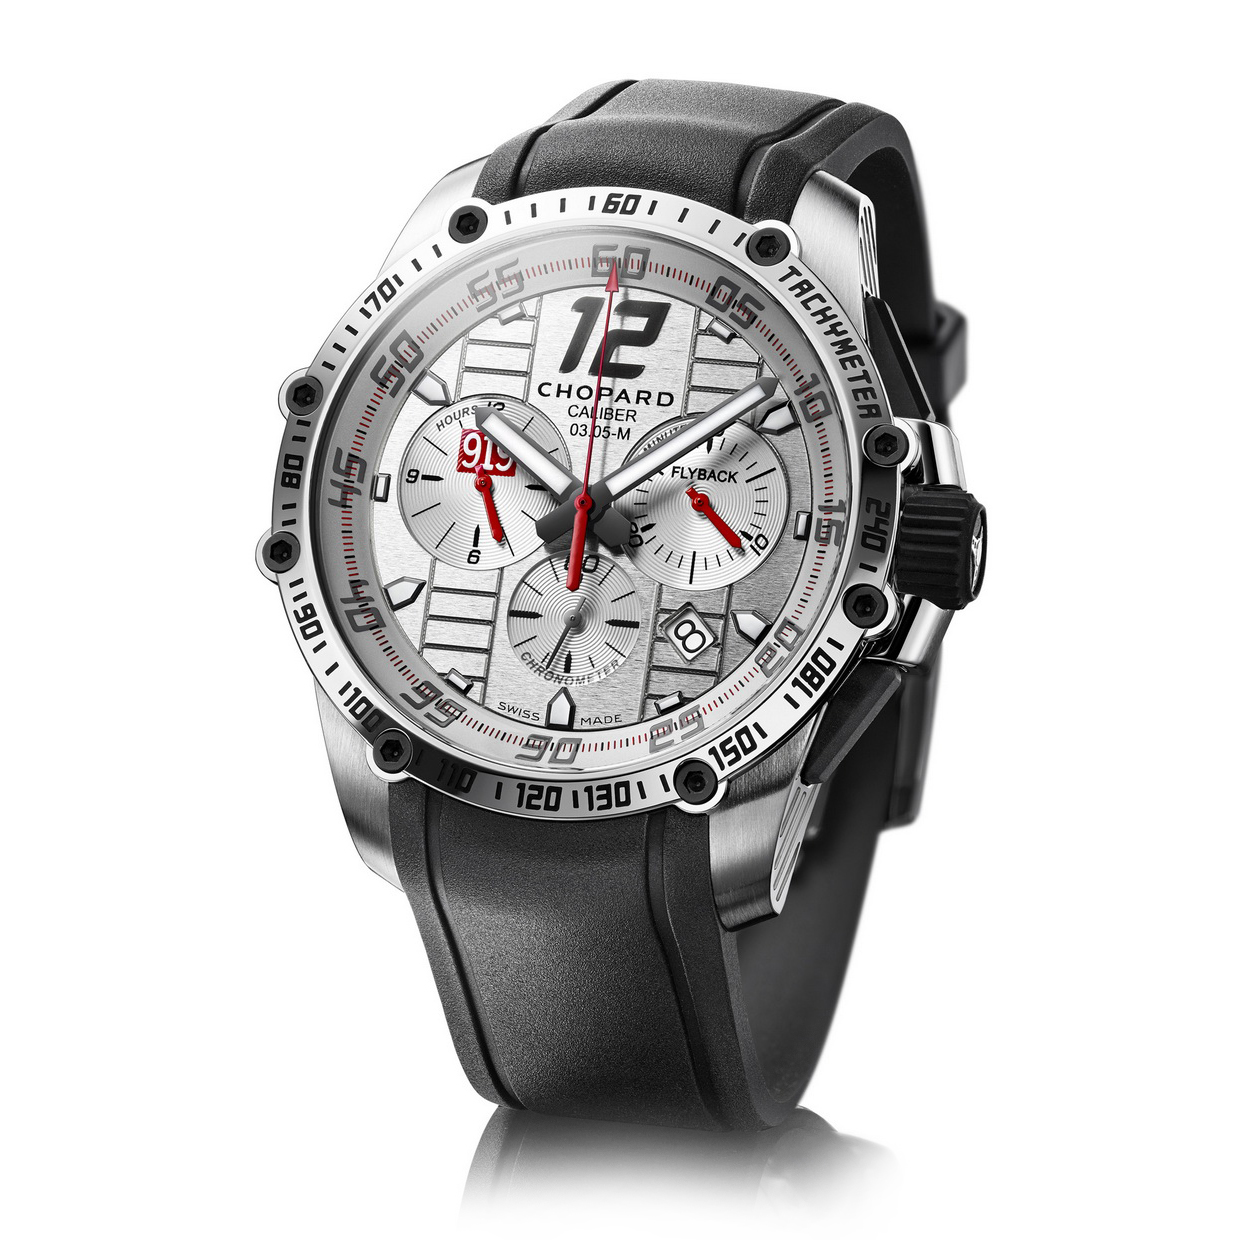 Superfast Chrono Porsche 919 Edition 168535-3002